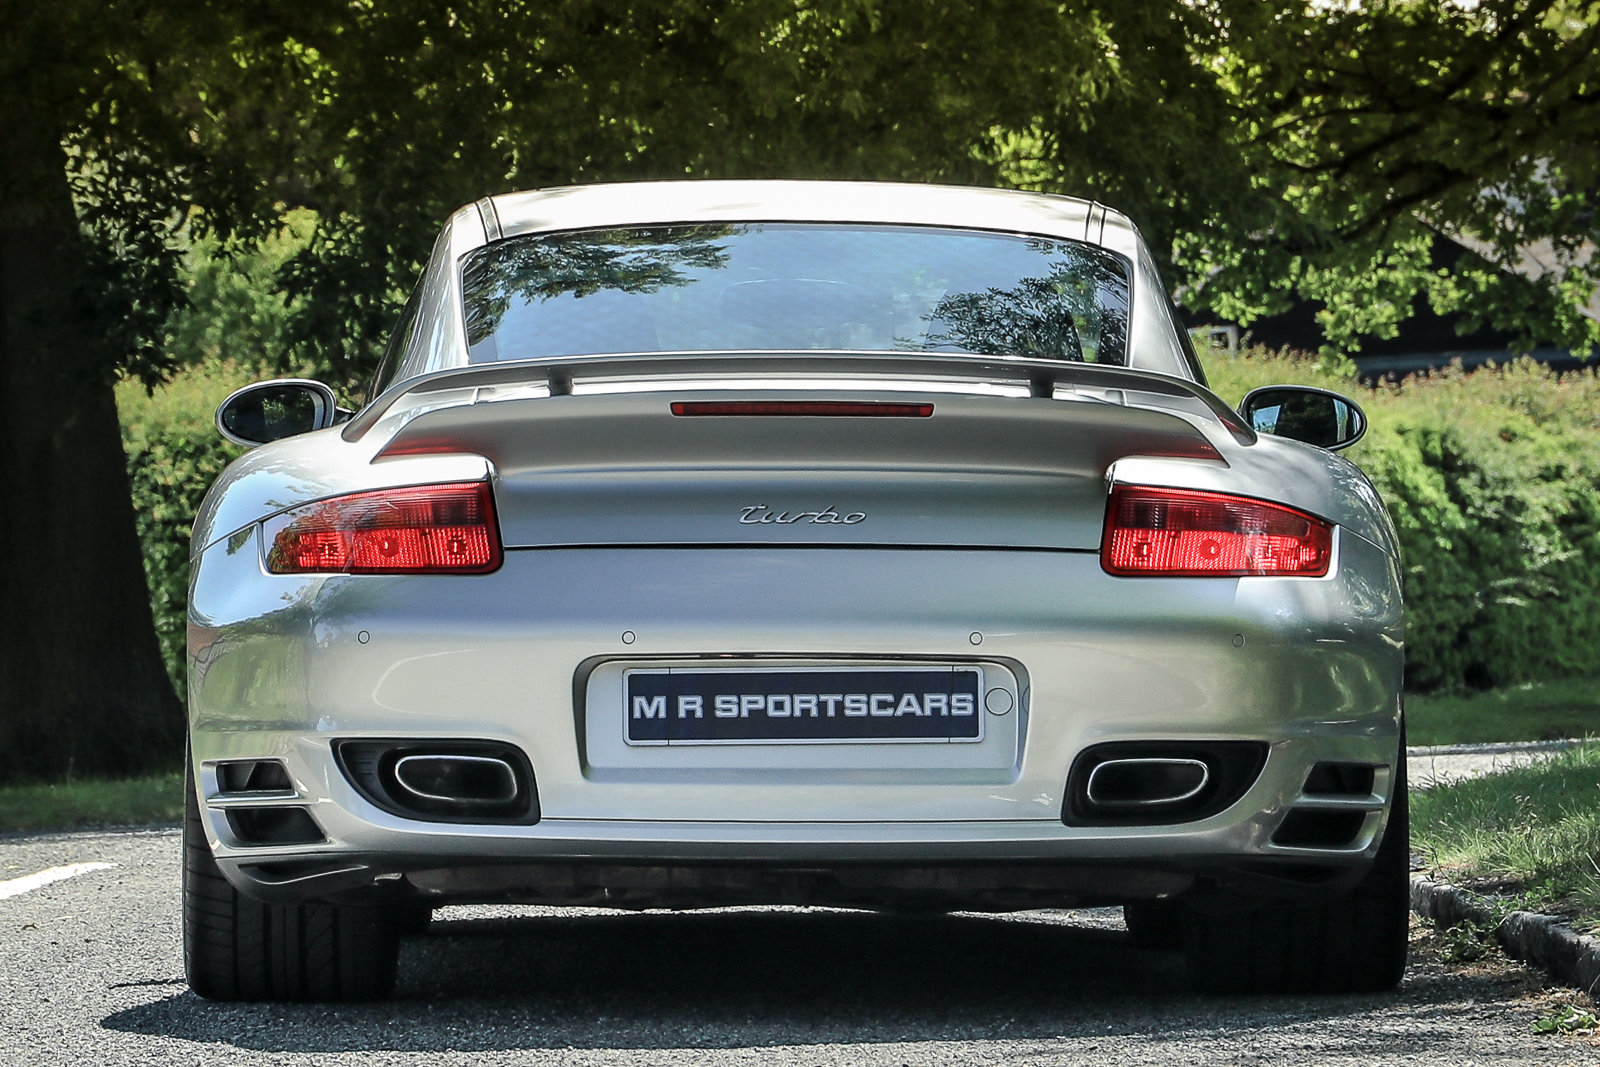 2009 Ultra Rare Porsche 911 Turbo 997 Gen 1.5 Manual Coupe For Sale (picture 3 of 6)